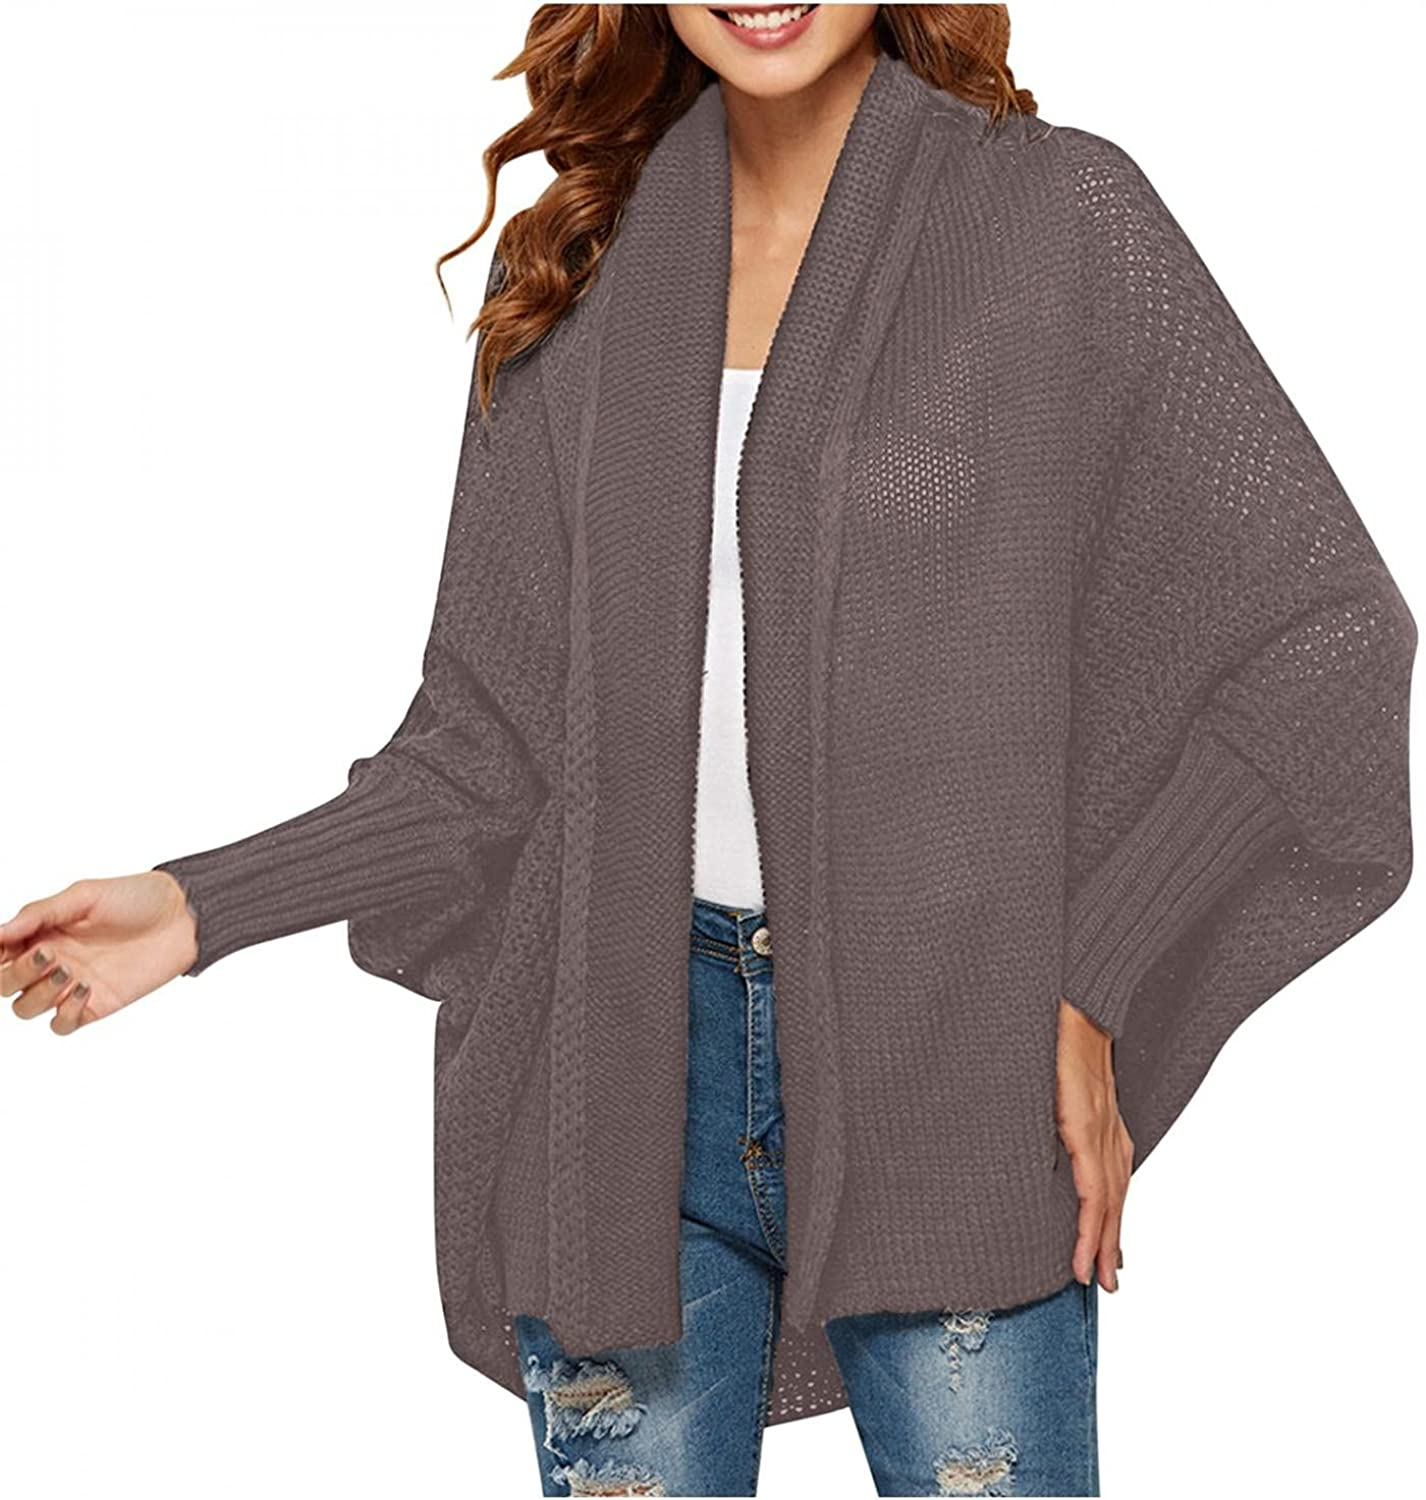 RNTOP Cardigan Sweaters for Women Lightweight, Kimono Batwing Sleeve Cable Knitted Slouchy Oversize Wrap Cardigan Sweater